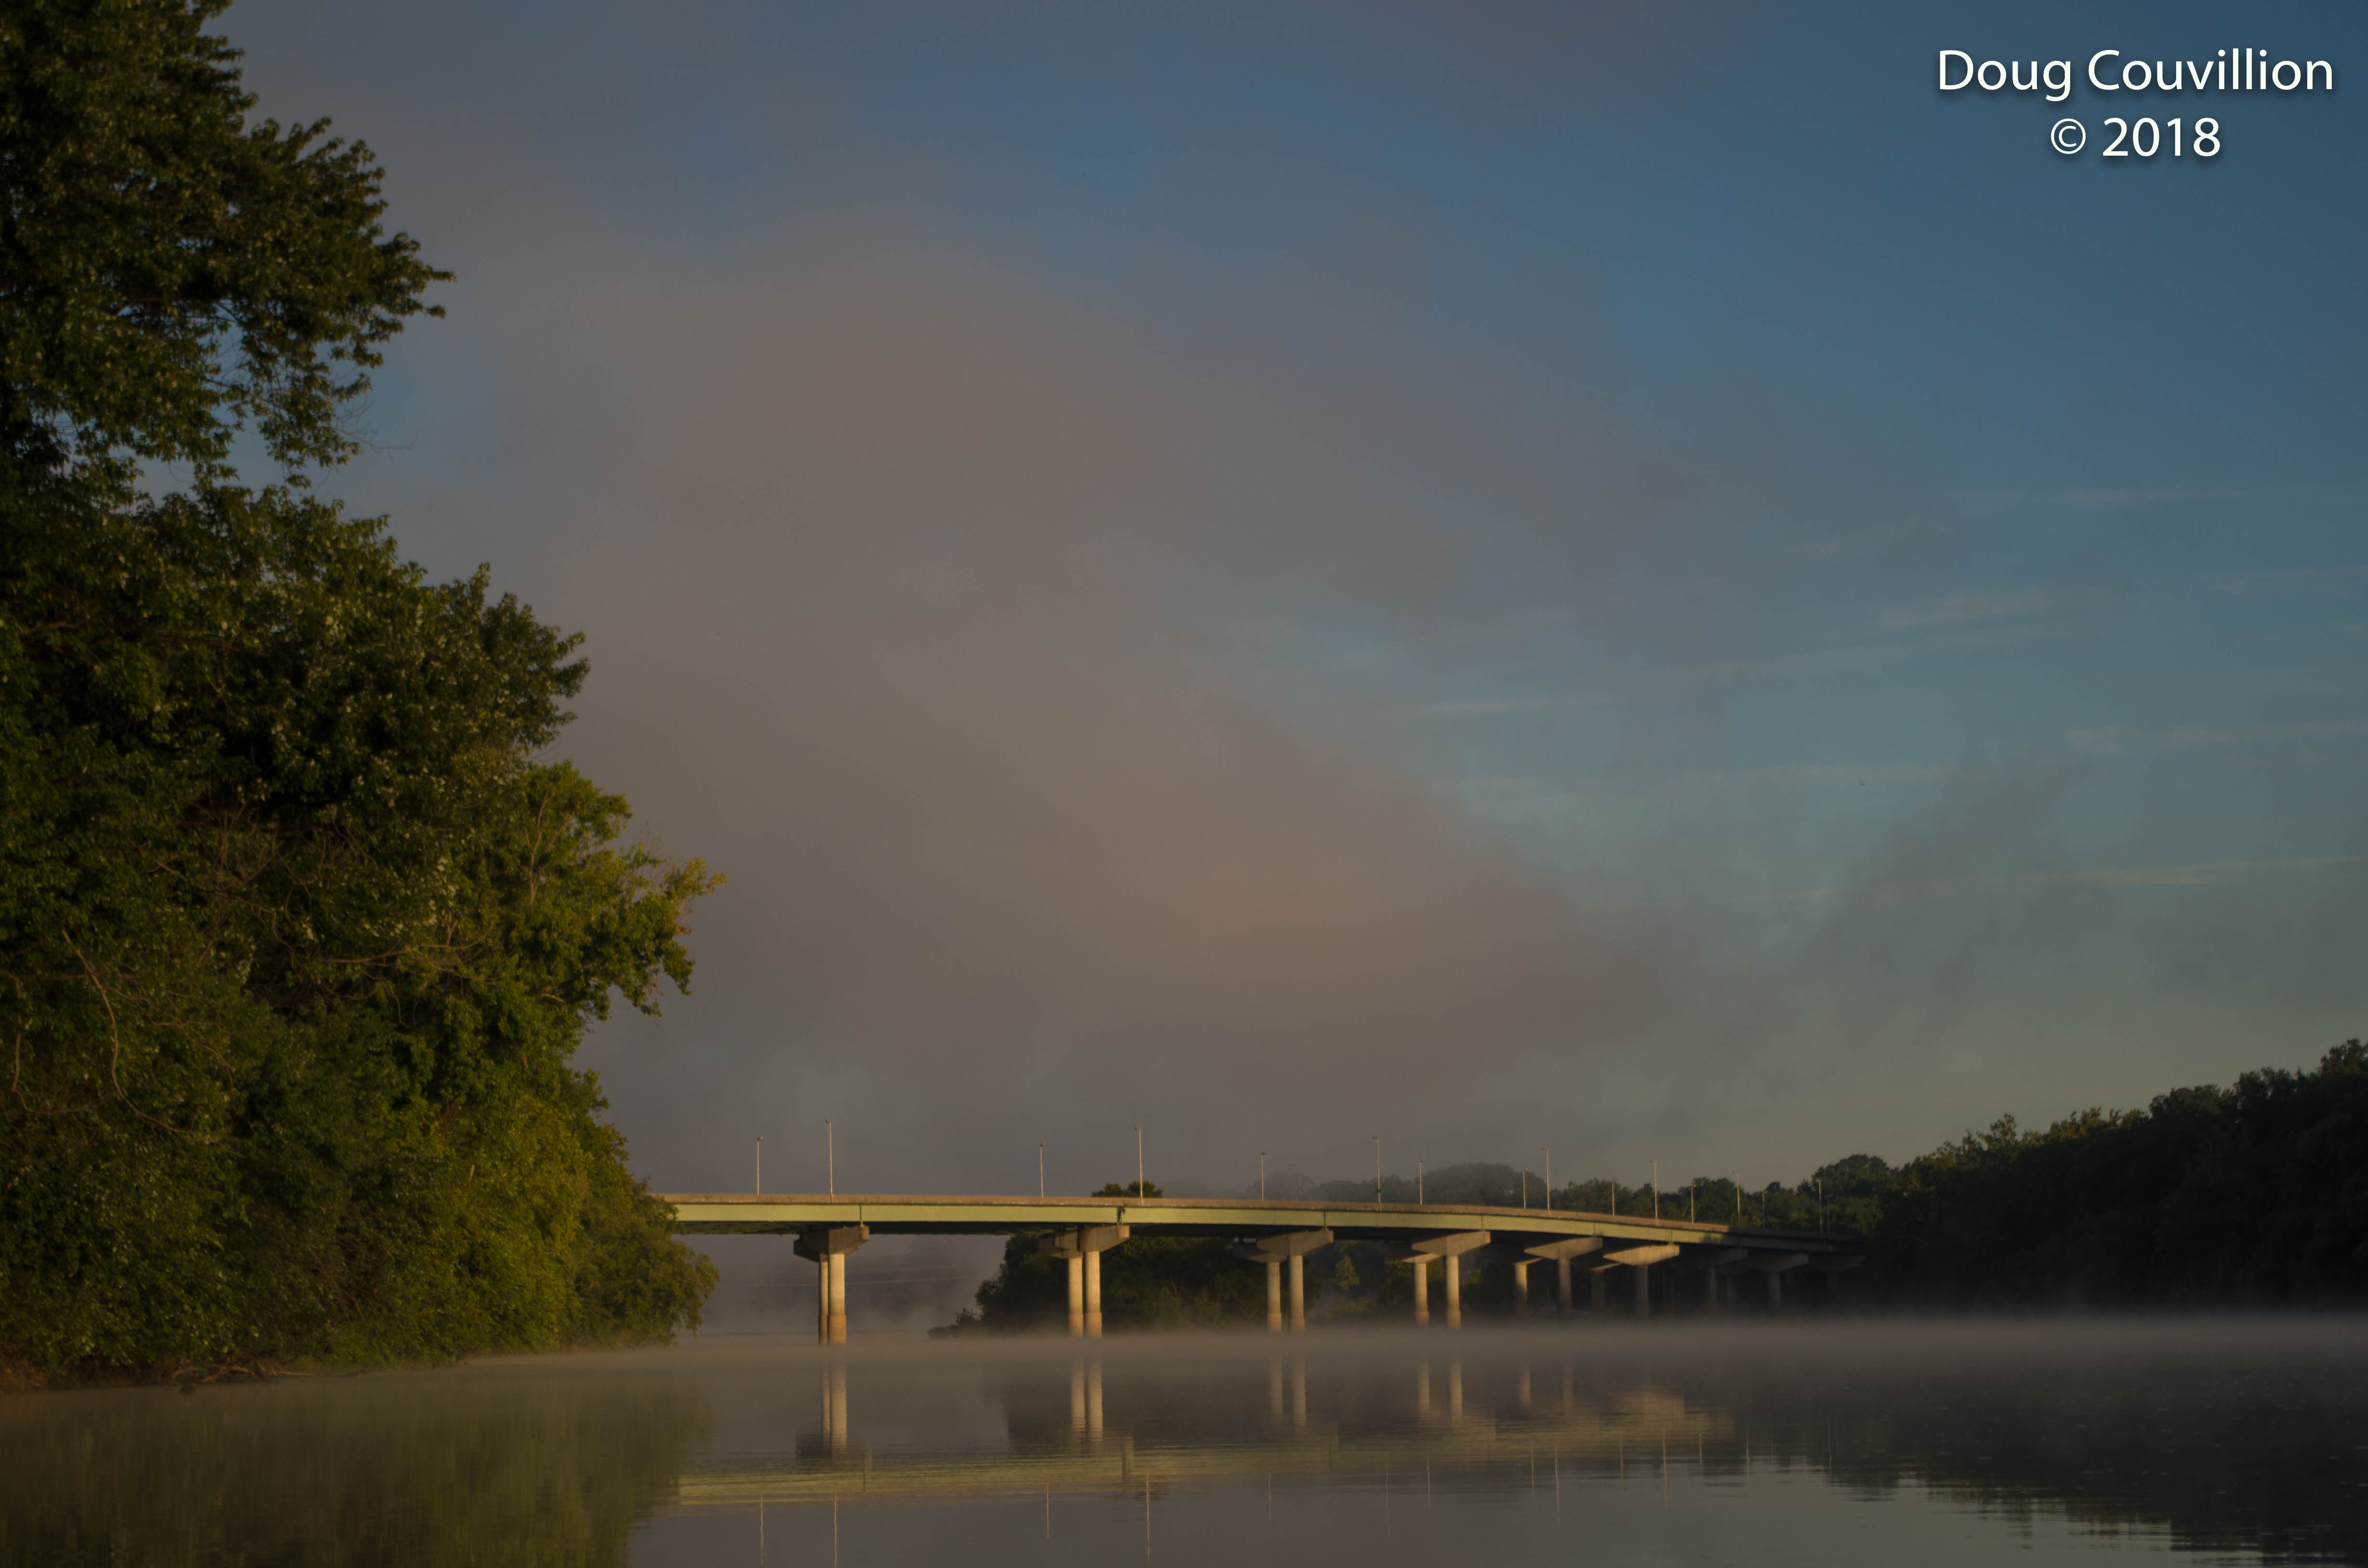 Photograph of the Edward E. Willey Bridge from the James River in Richmond, Virginia by Doug Couvillion